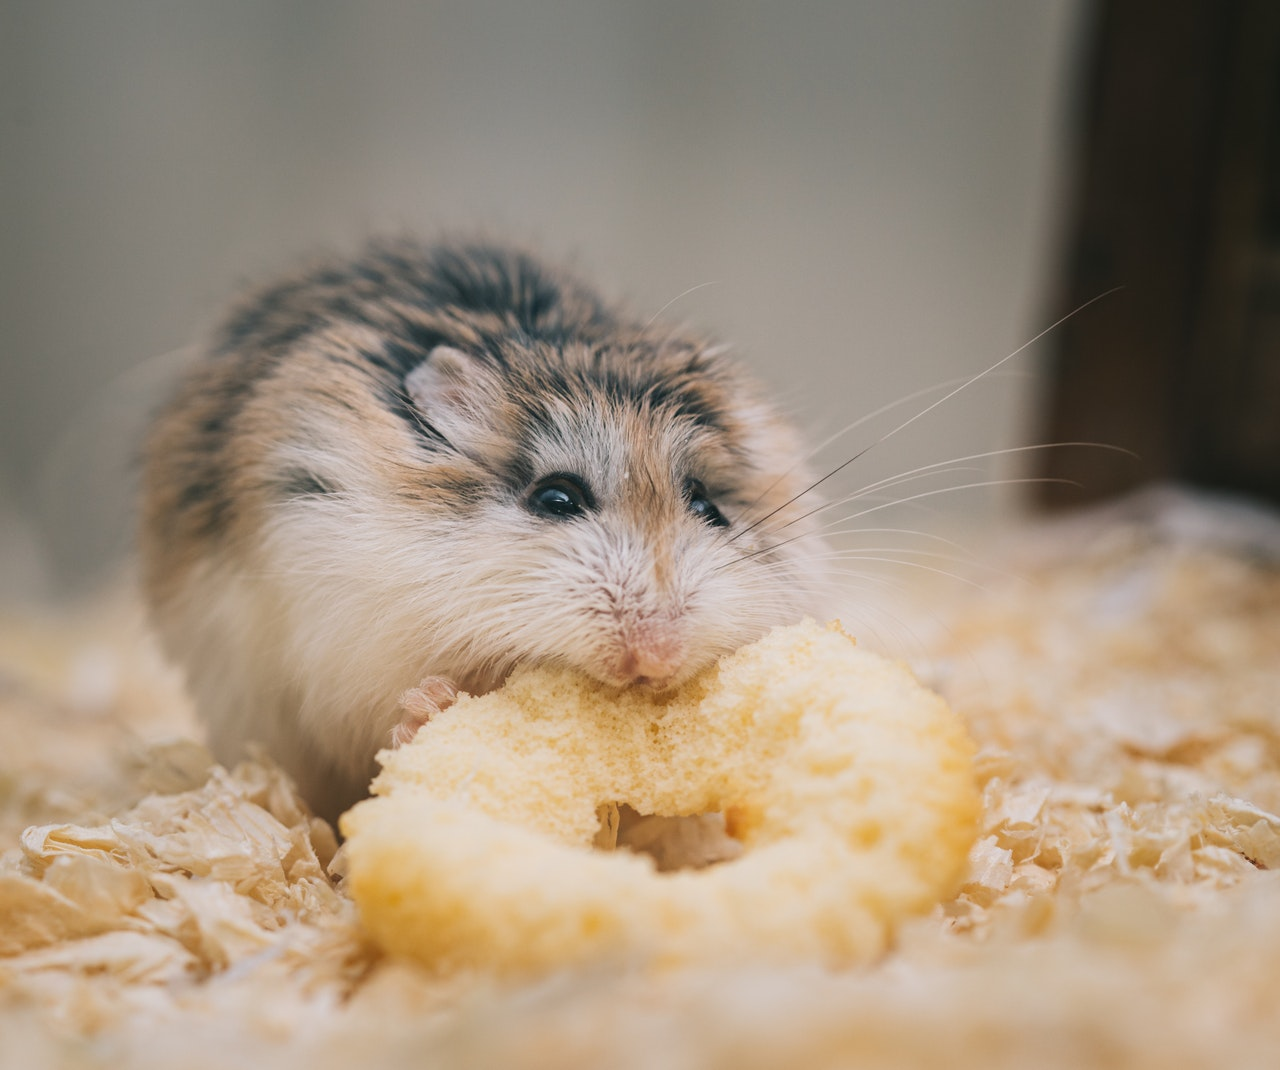 A closeup of a hamster with brown and white fur on its back and white fur on its belly. It is chewing on a circular, gold colored treat with one paw gripping the side. It stands in a pile of fluffy substrate.